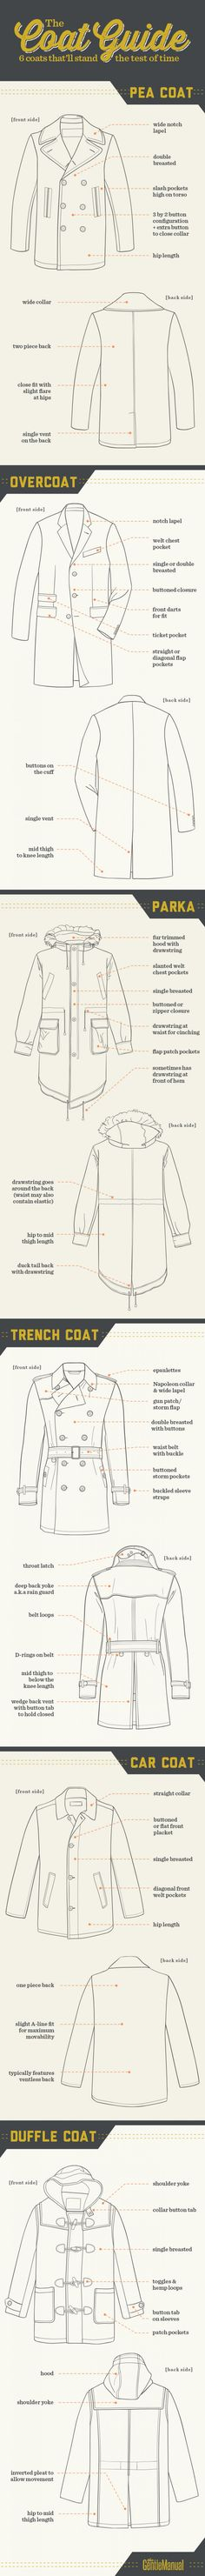 6 coat styles every man should know about. Stay warm and dapper from this guide and infographic from the GentleManual Fashion Pattern, Mens Fashion, Fashion Tips, Fashion Design, Fashion Articles, Fashion Menswear, Men Style Tips, Well Dressed Men, Gentleman Style